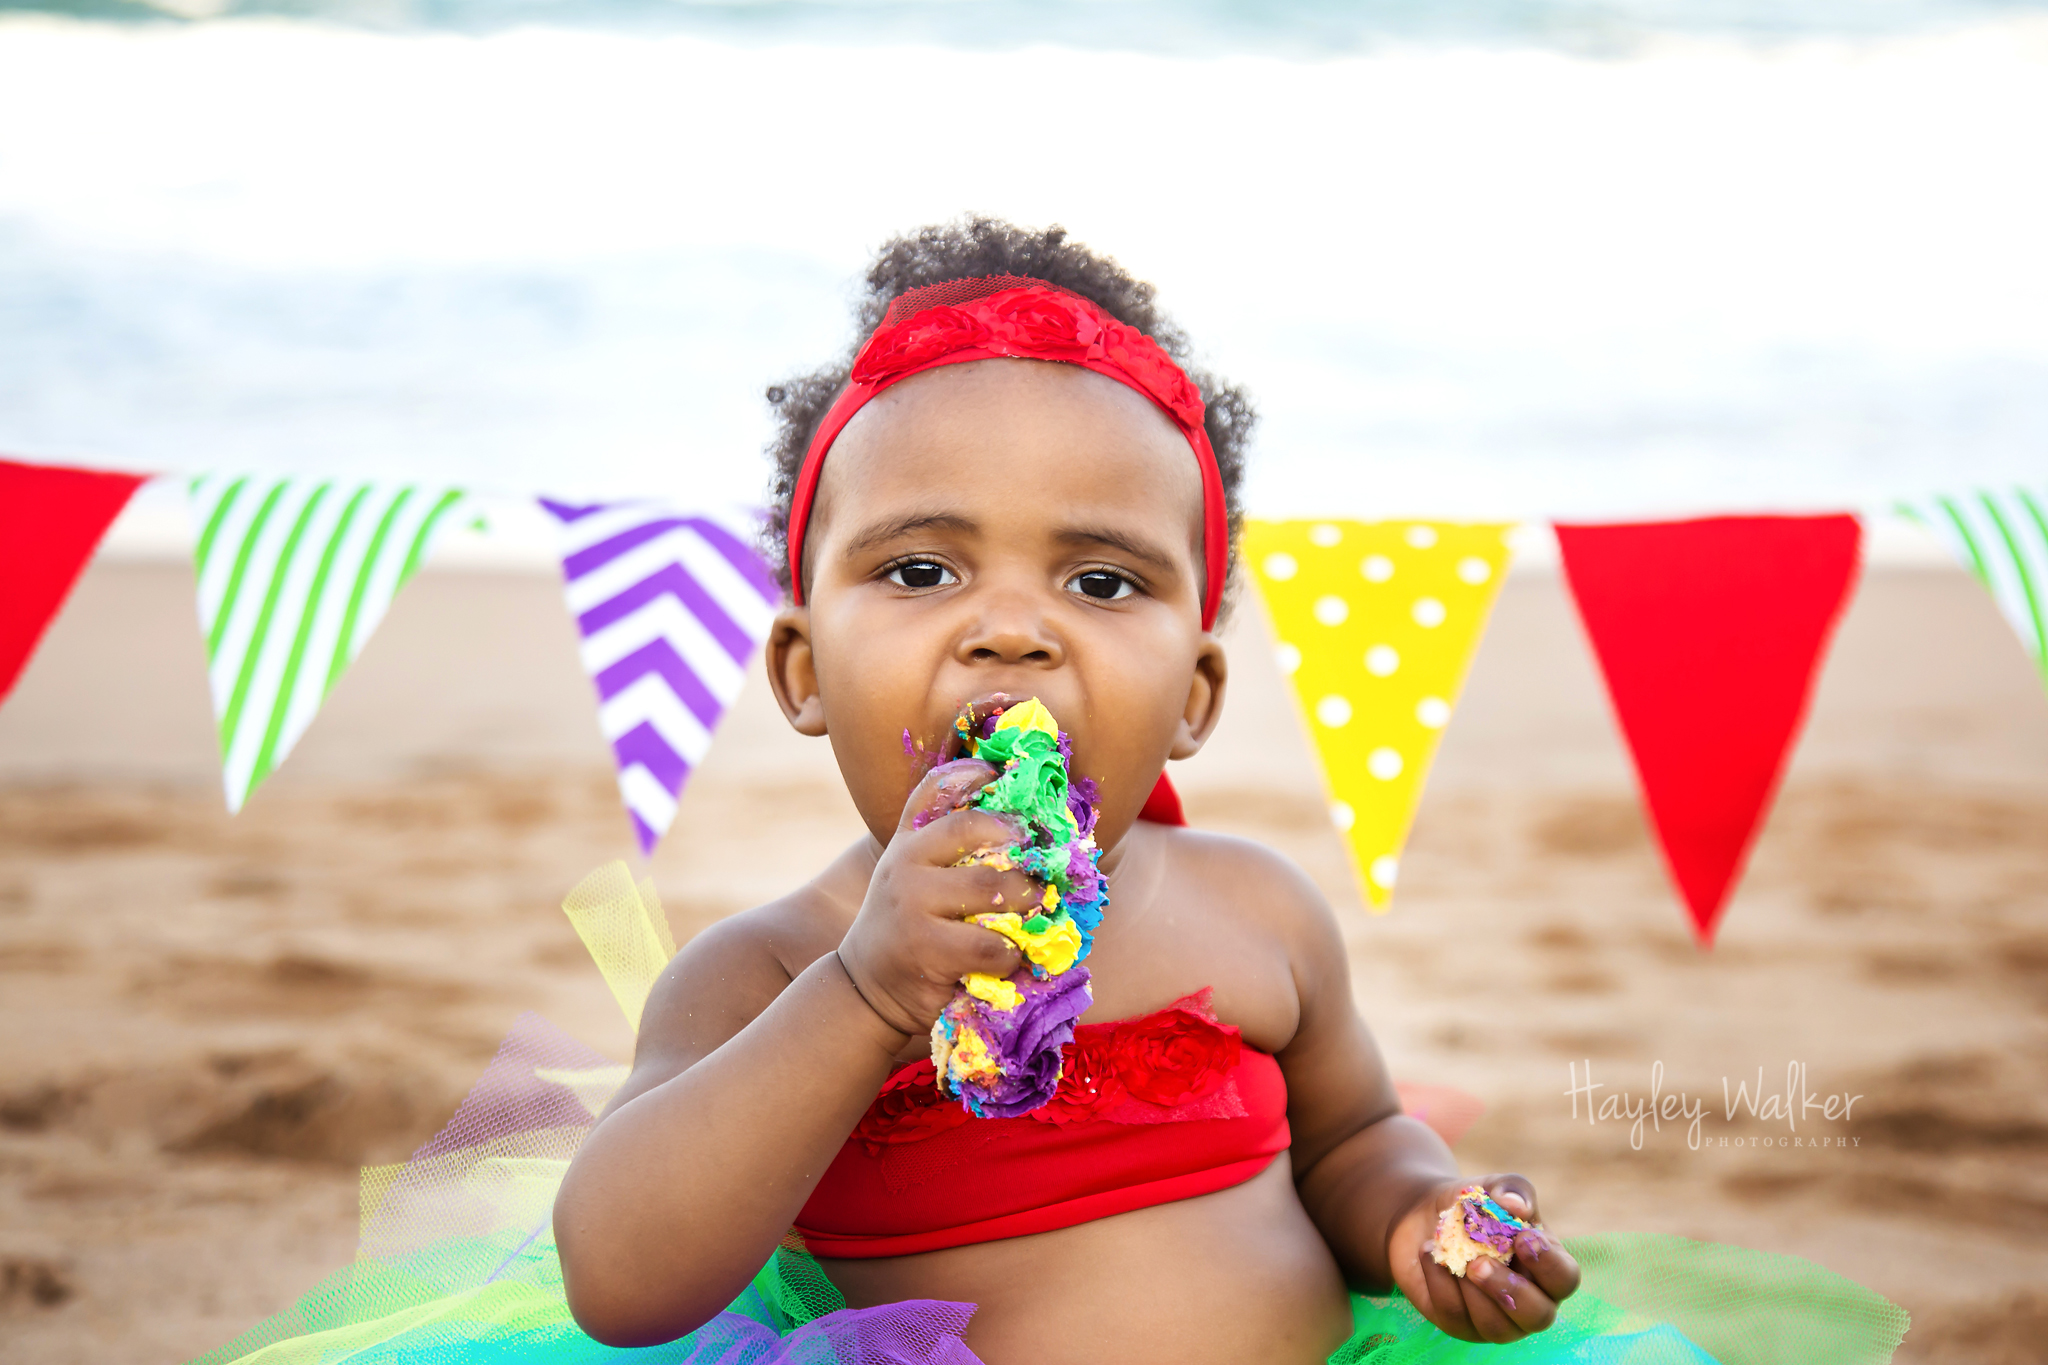 007-hayley-walker-photography-hillcrest-durban-photographer-family-photoshoot-beach-cakesmash